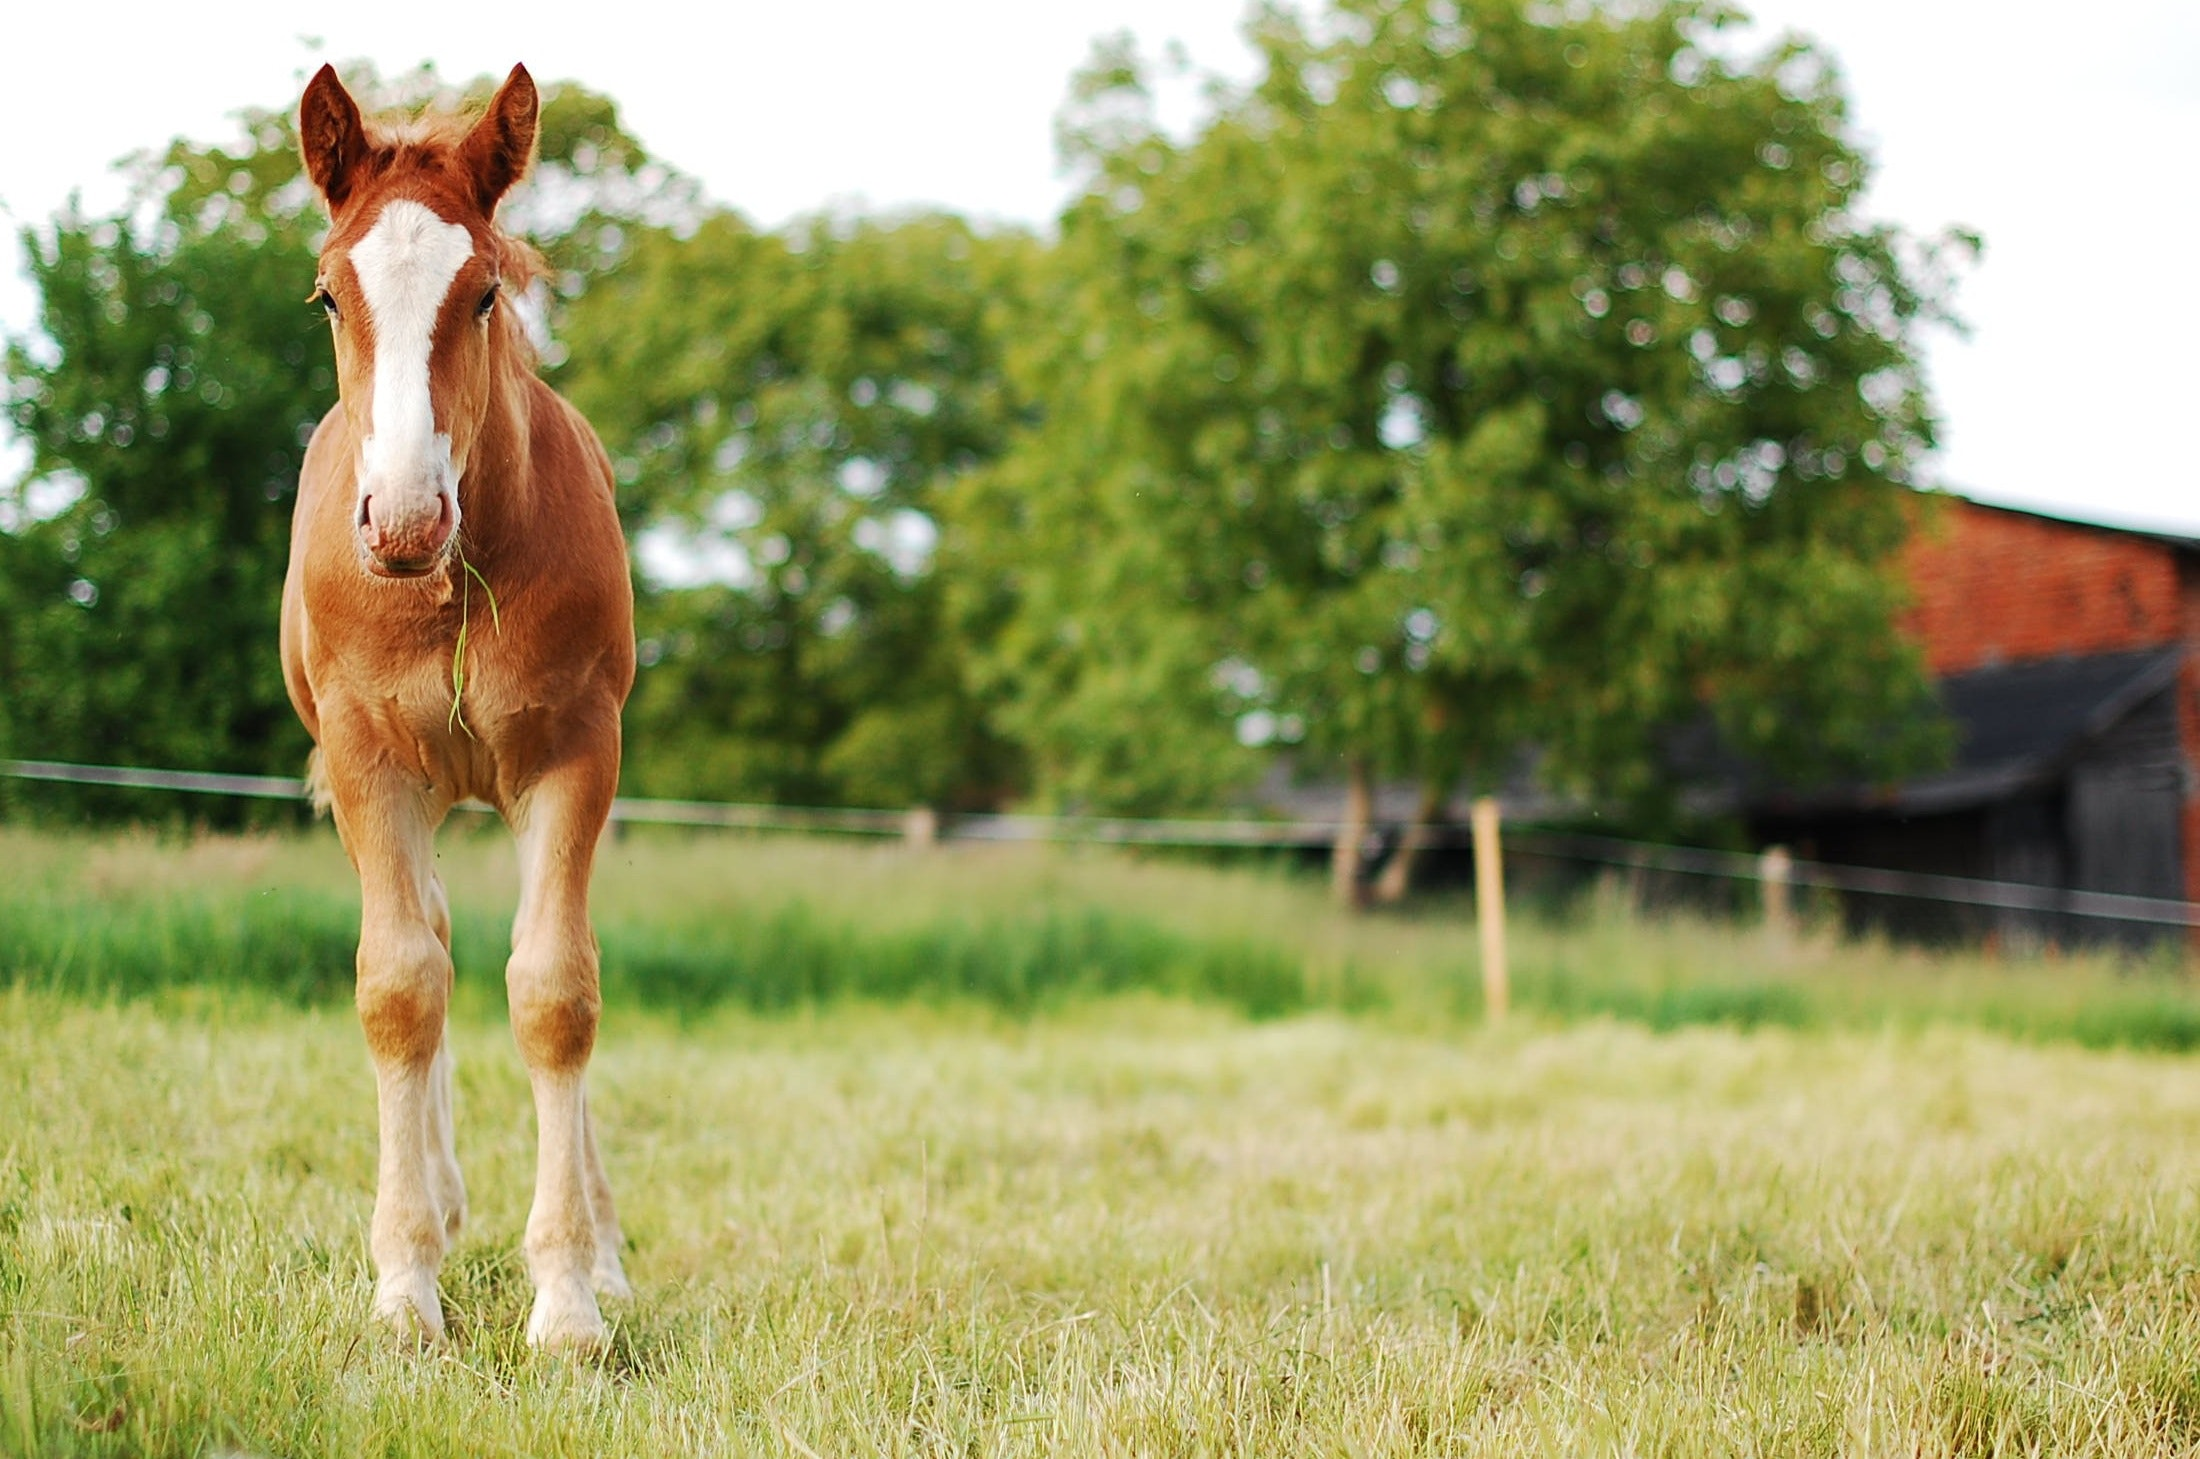 Image of a horse in a pasture